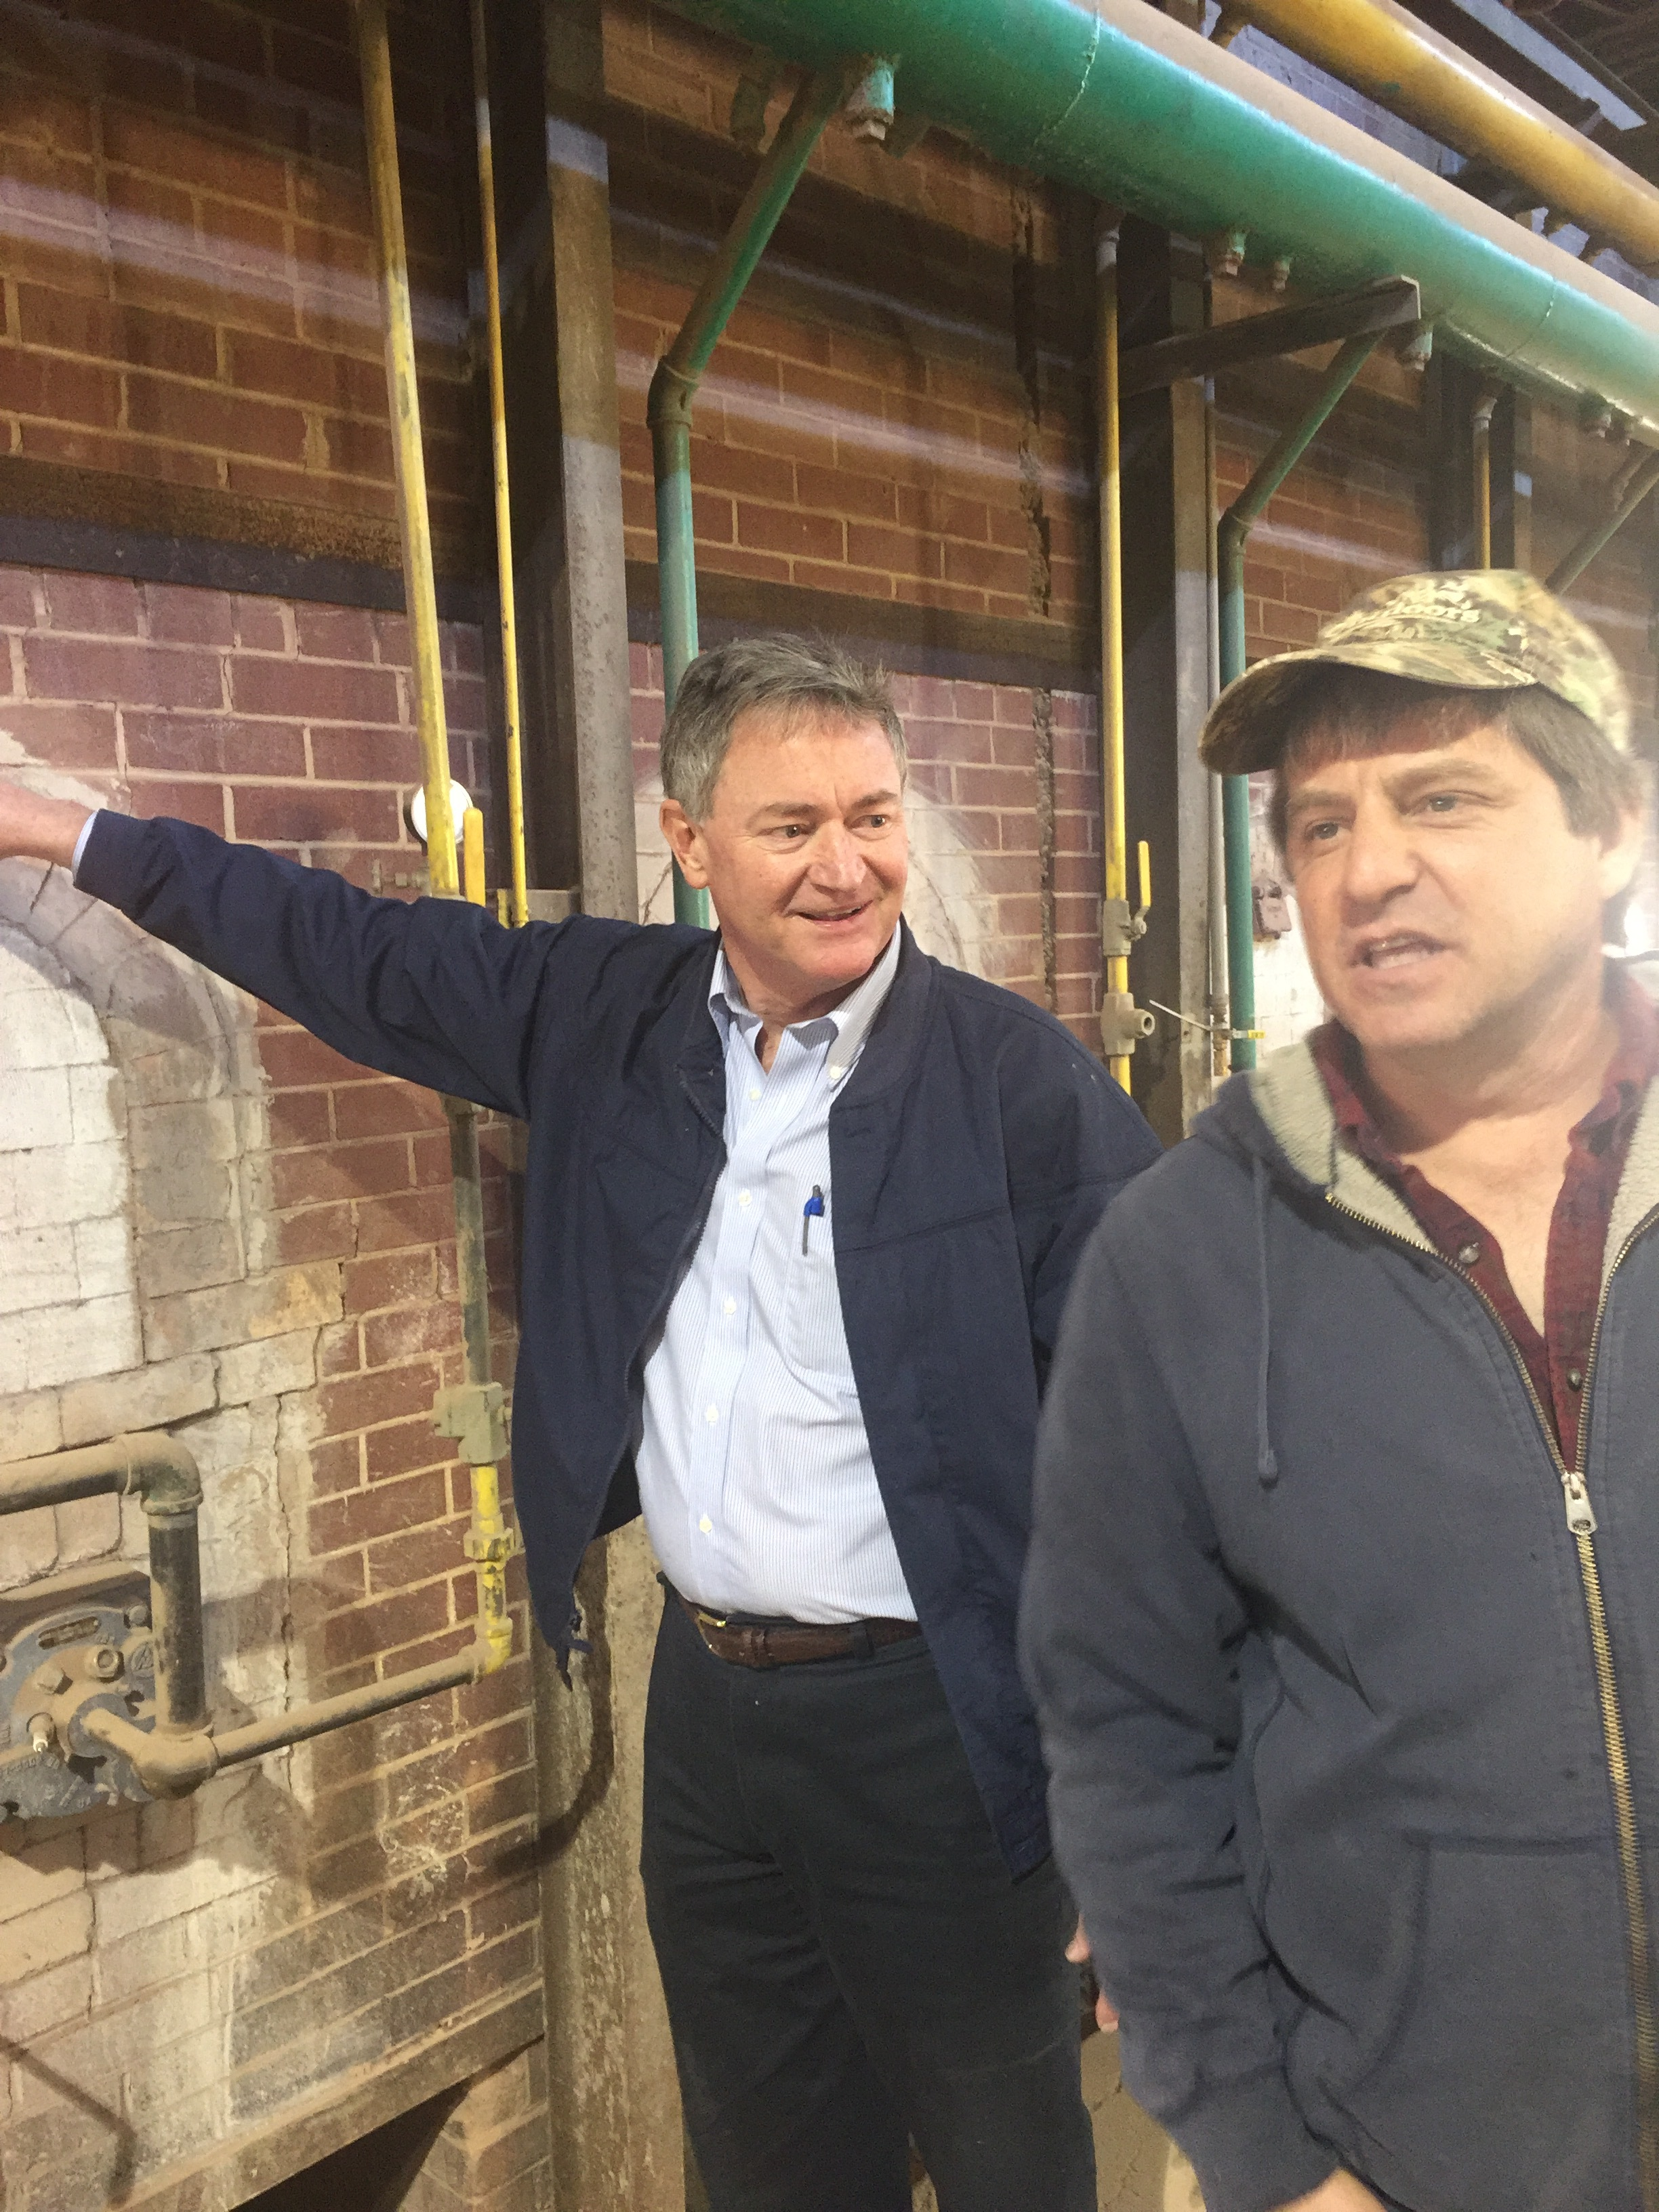 President David Frame and Plant Manager Chris Blackwell discussing the 48 hour brick baking process.